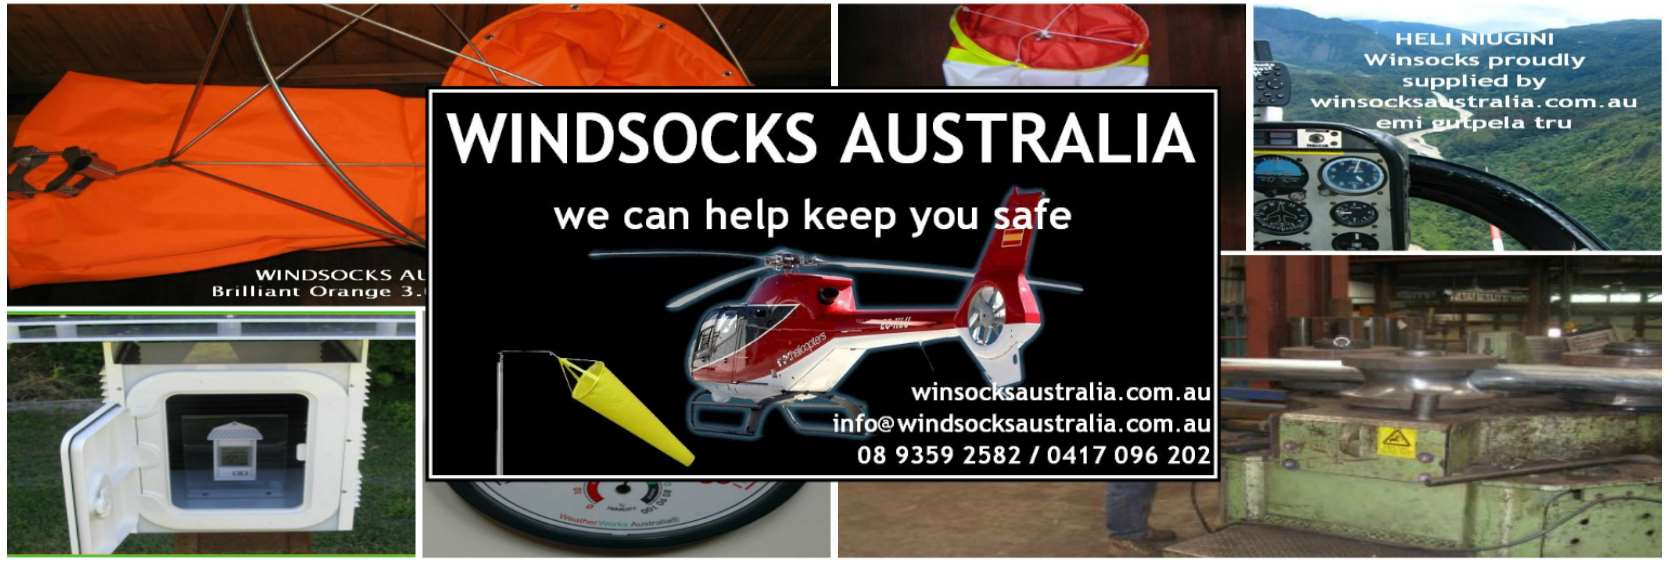 Windsocks Australia